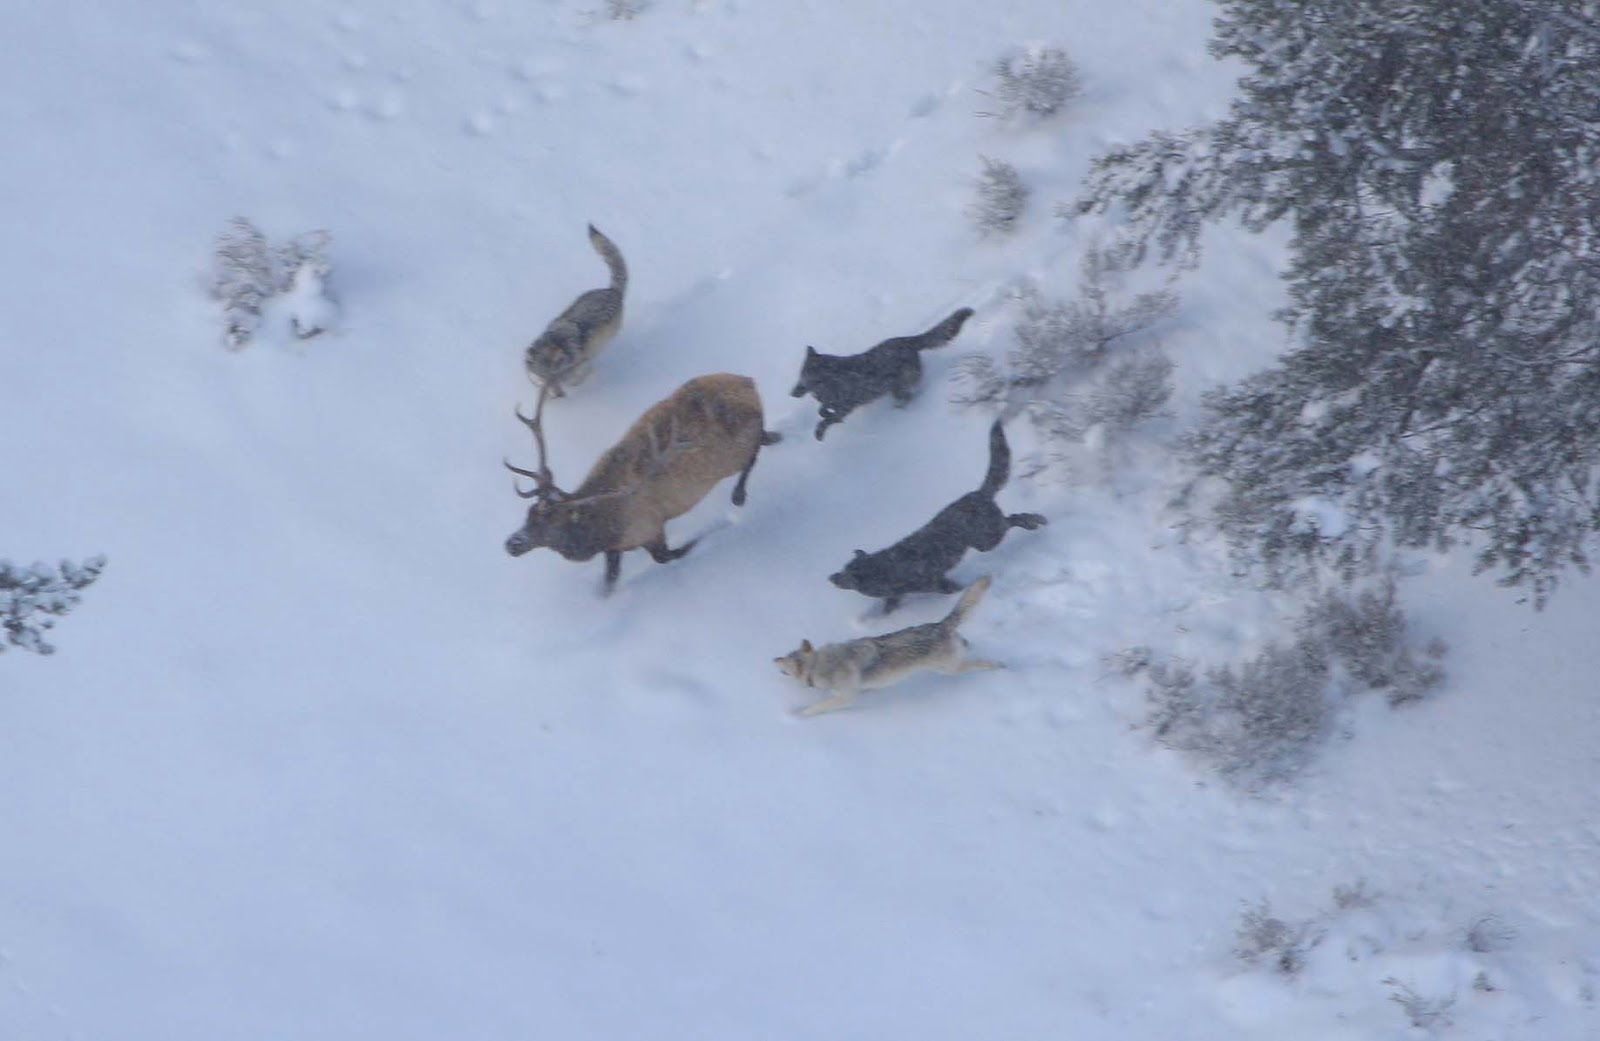 by hunting cooperatively in packs wolves can take down large prey like elk and deer with higher success rates than other predators